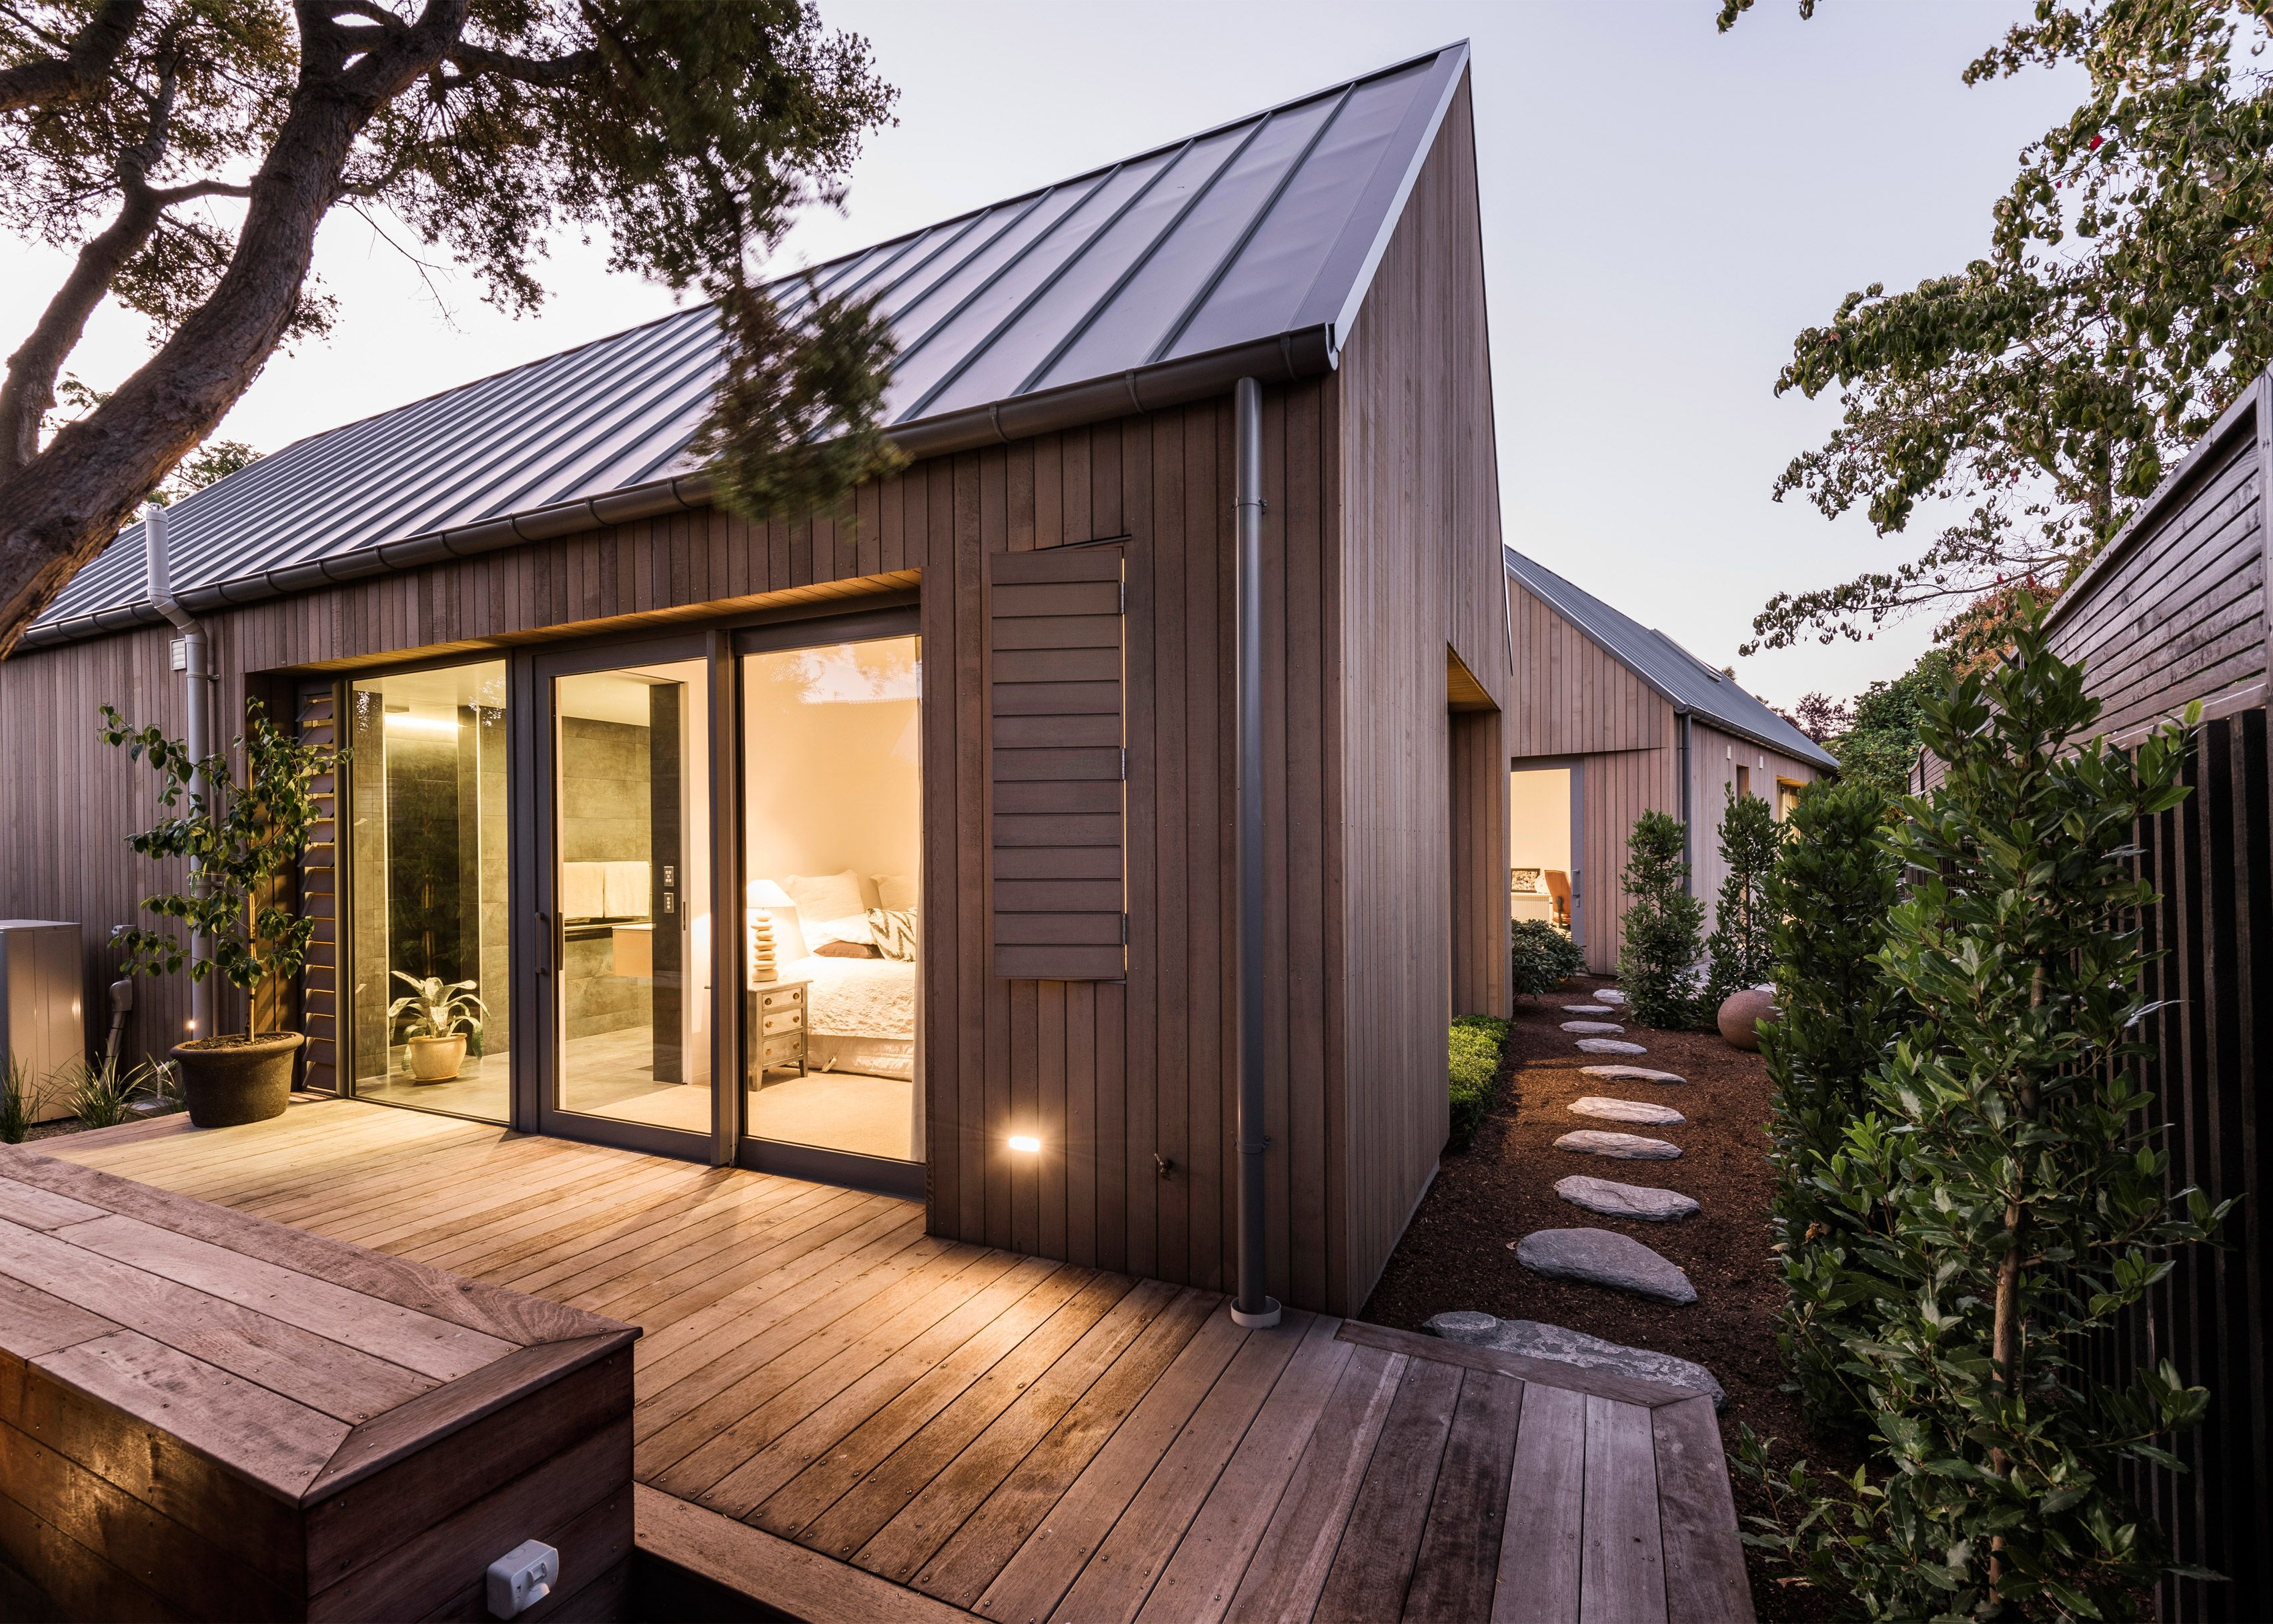 Case Ornsby Completes Cedar Clad House In Christchurch Divided Up By Courtyards Wooden House Design Contemporary House House Exterior